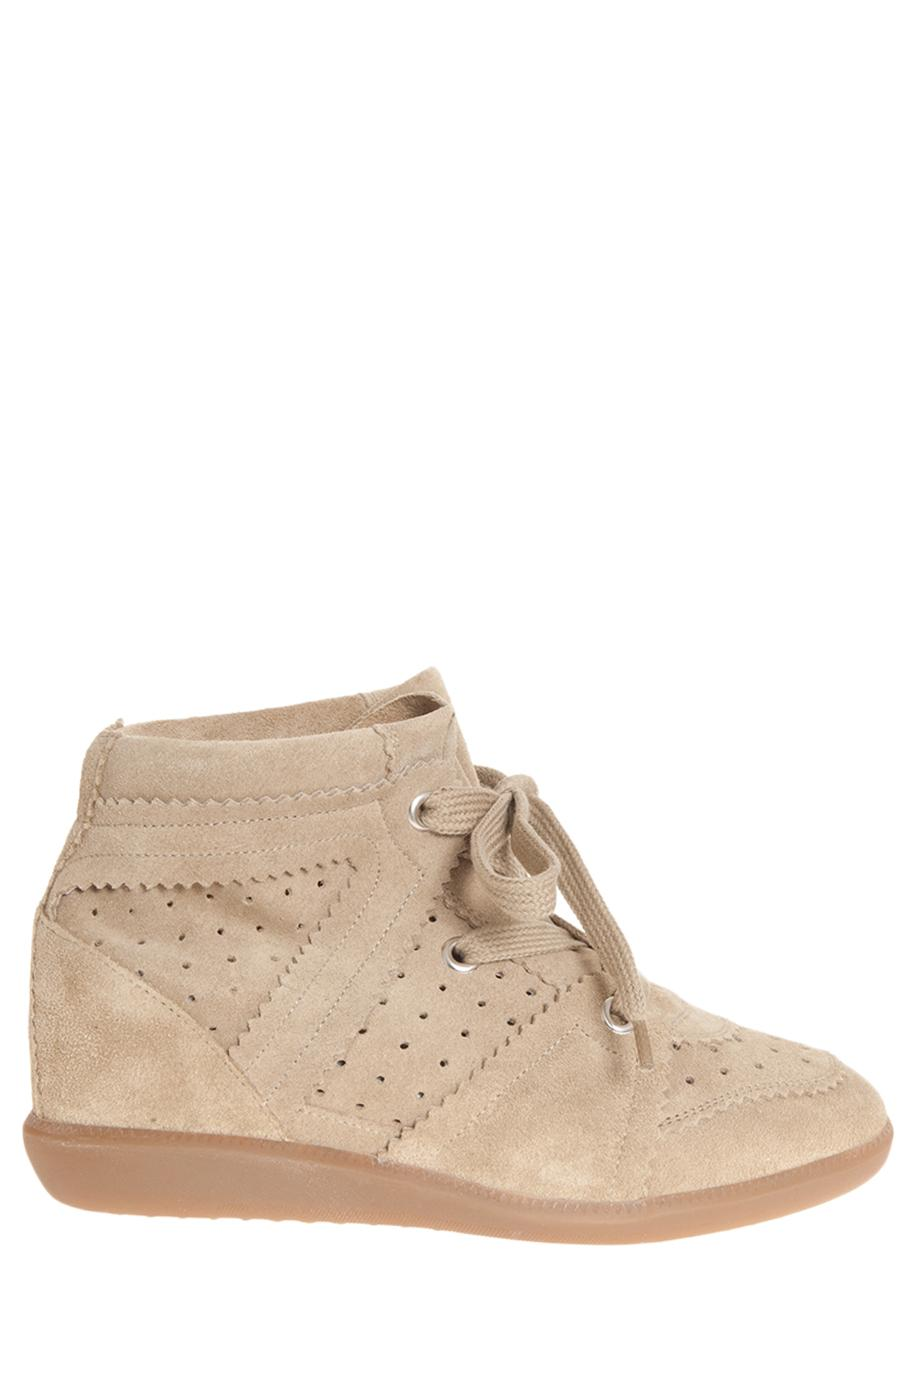 BOBBY SUEDE SNEAKERS, SIZE FR40, WOMEN, NEUTRAL